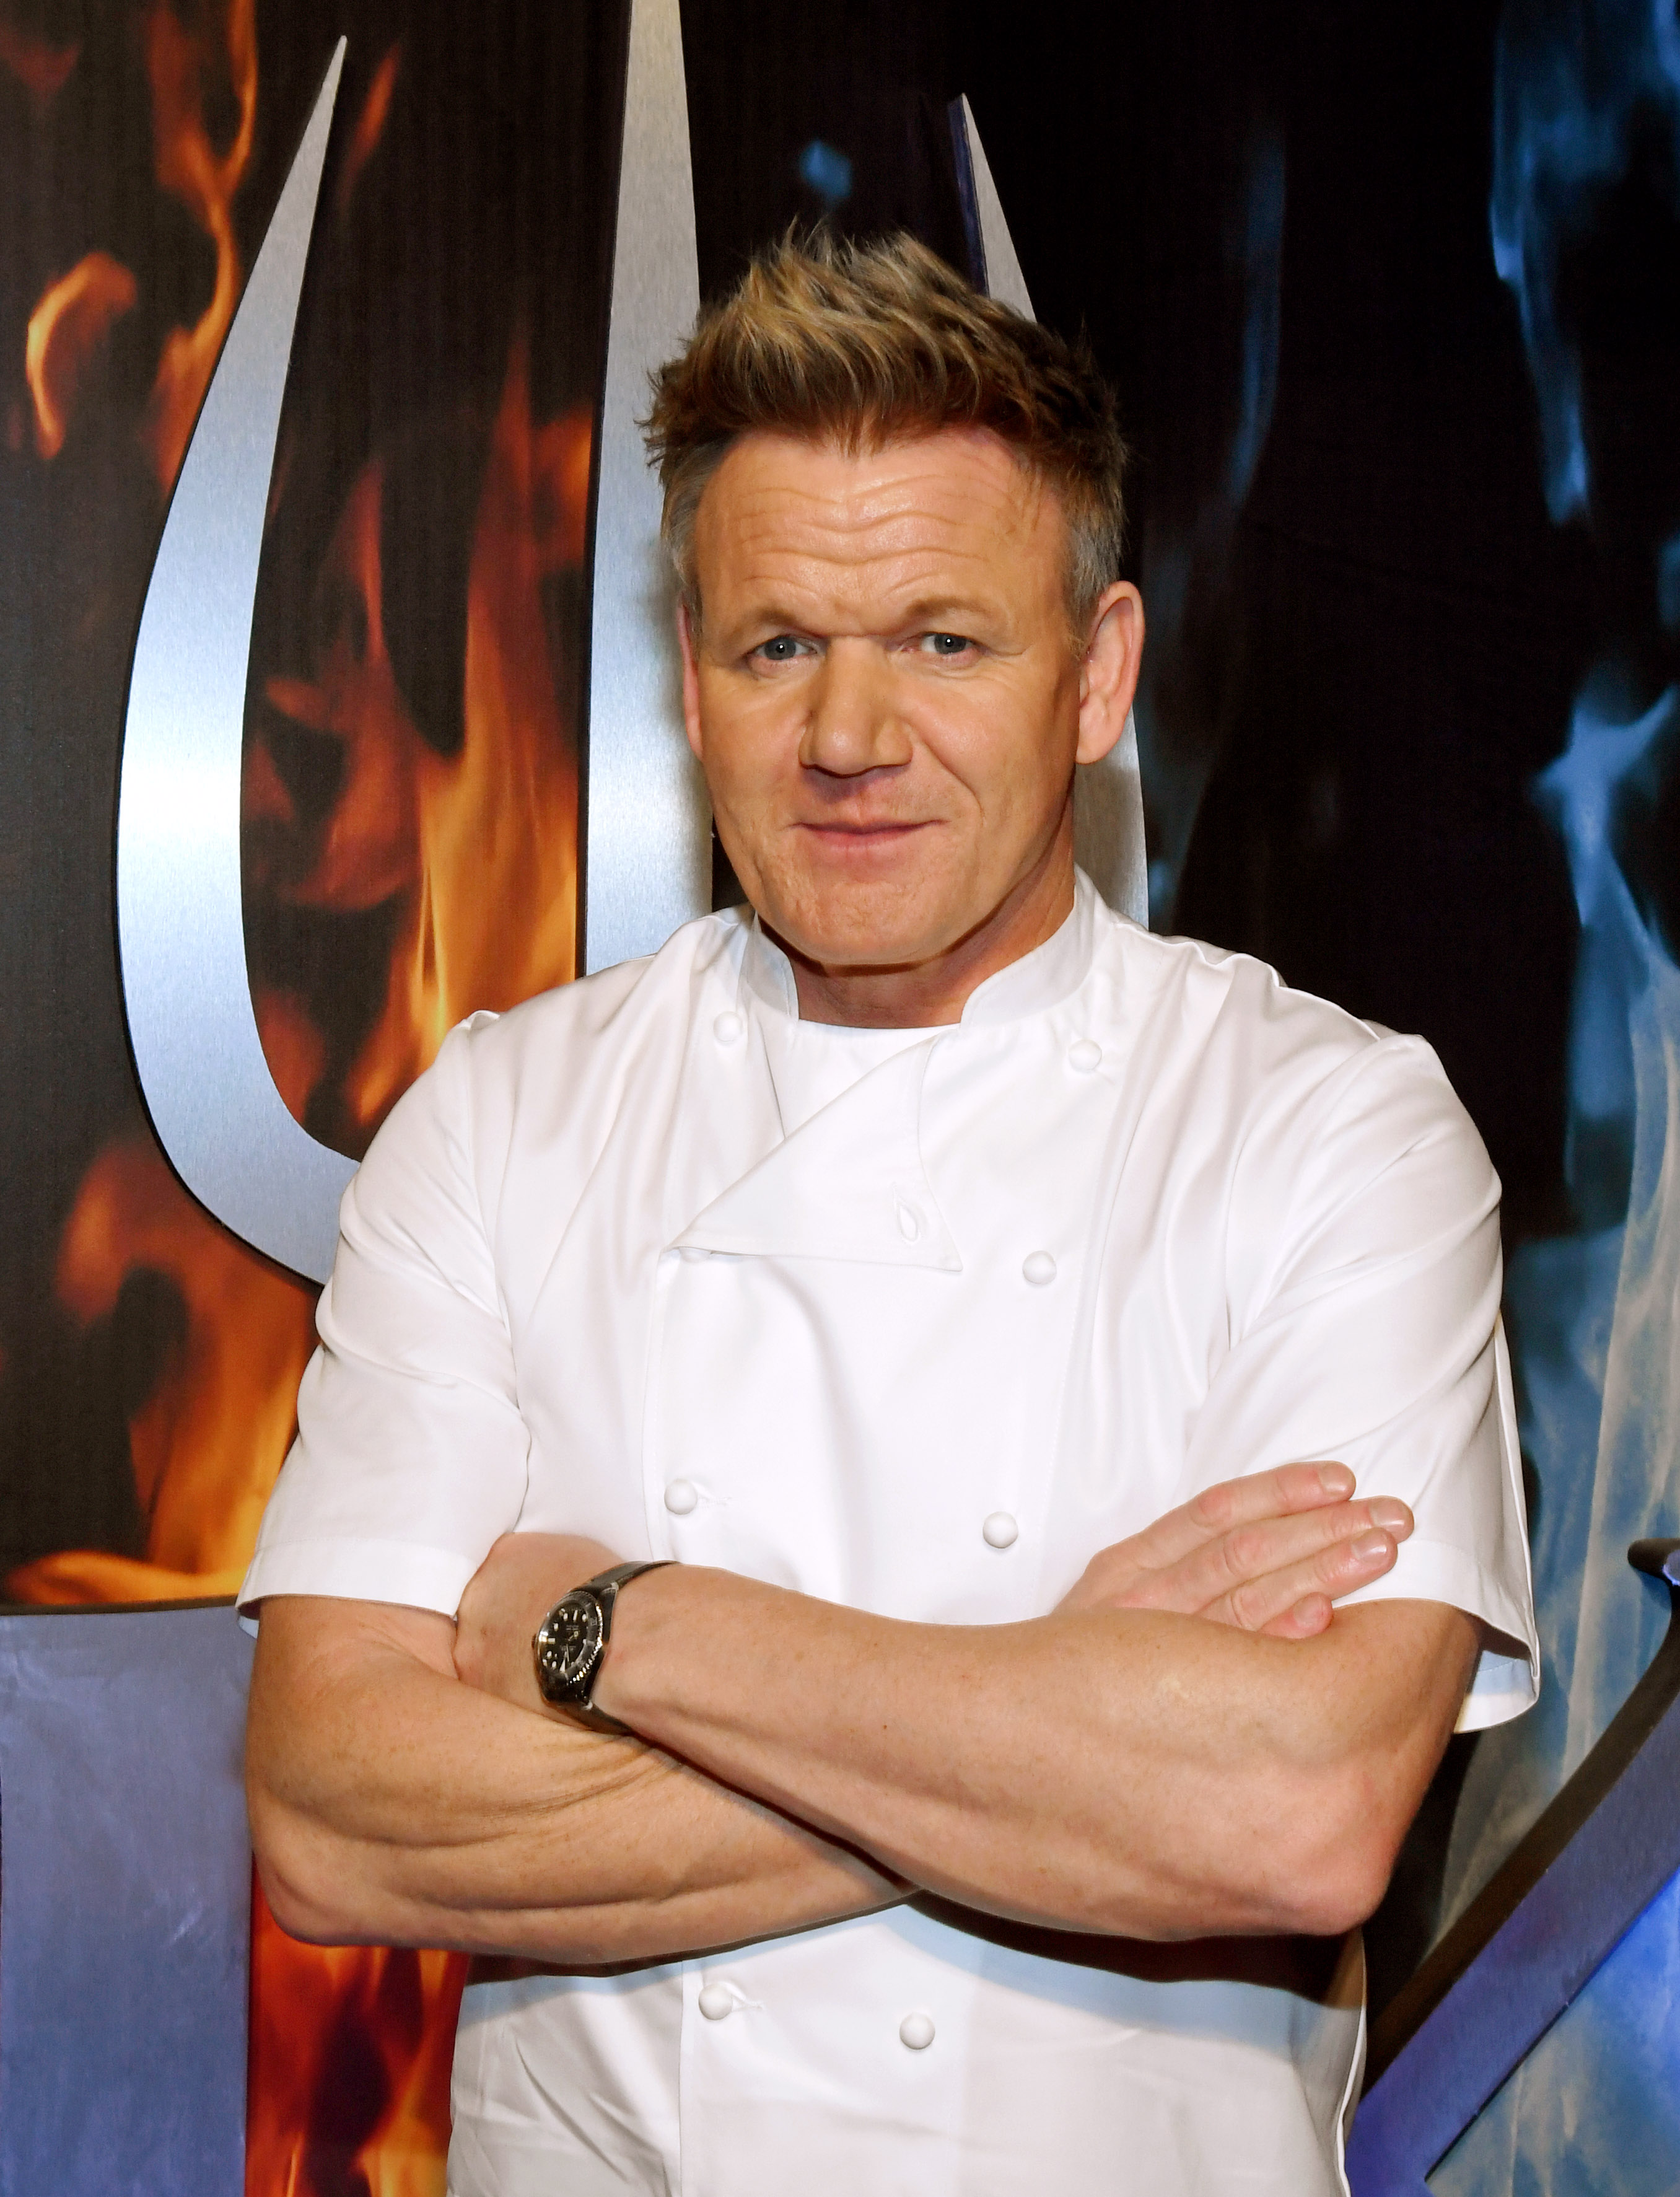 Gordon Ramsay's Asian Eating House Is No Longer Referred to as 'Authentic' Nor 'Vibrant'